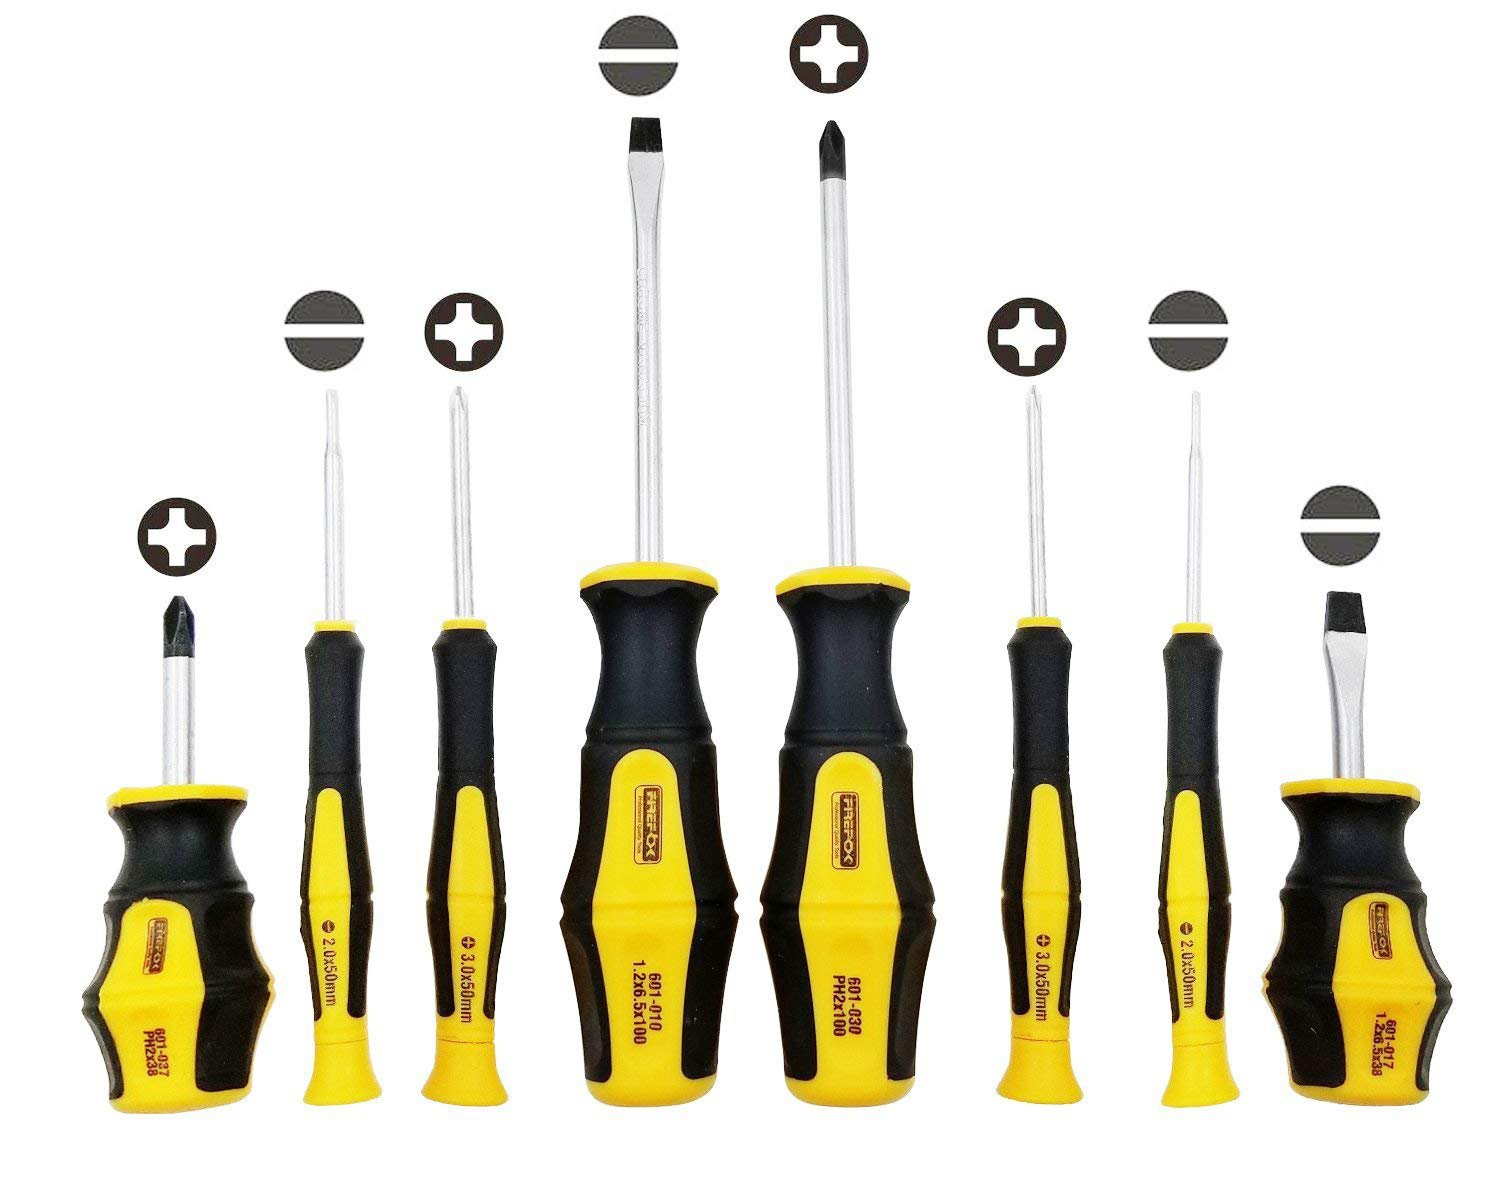 Professional Screwdriver Set,8 Pieces Phillips and Slotted Magnetic Screwdriver,Craftsman Toolkit,Big and Micro-Fine Grip, NON-Slip,Rust Resistant,Magnetic Design (8 pack)